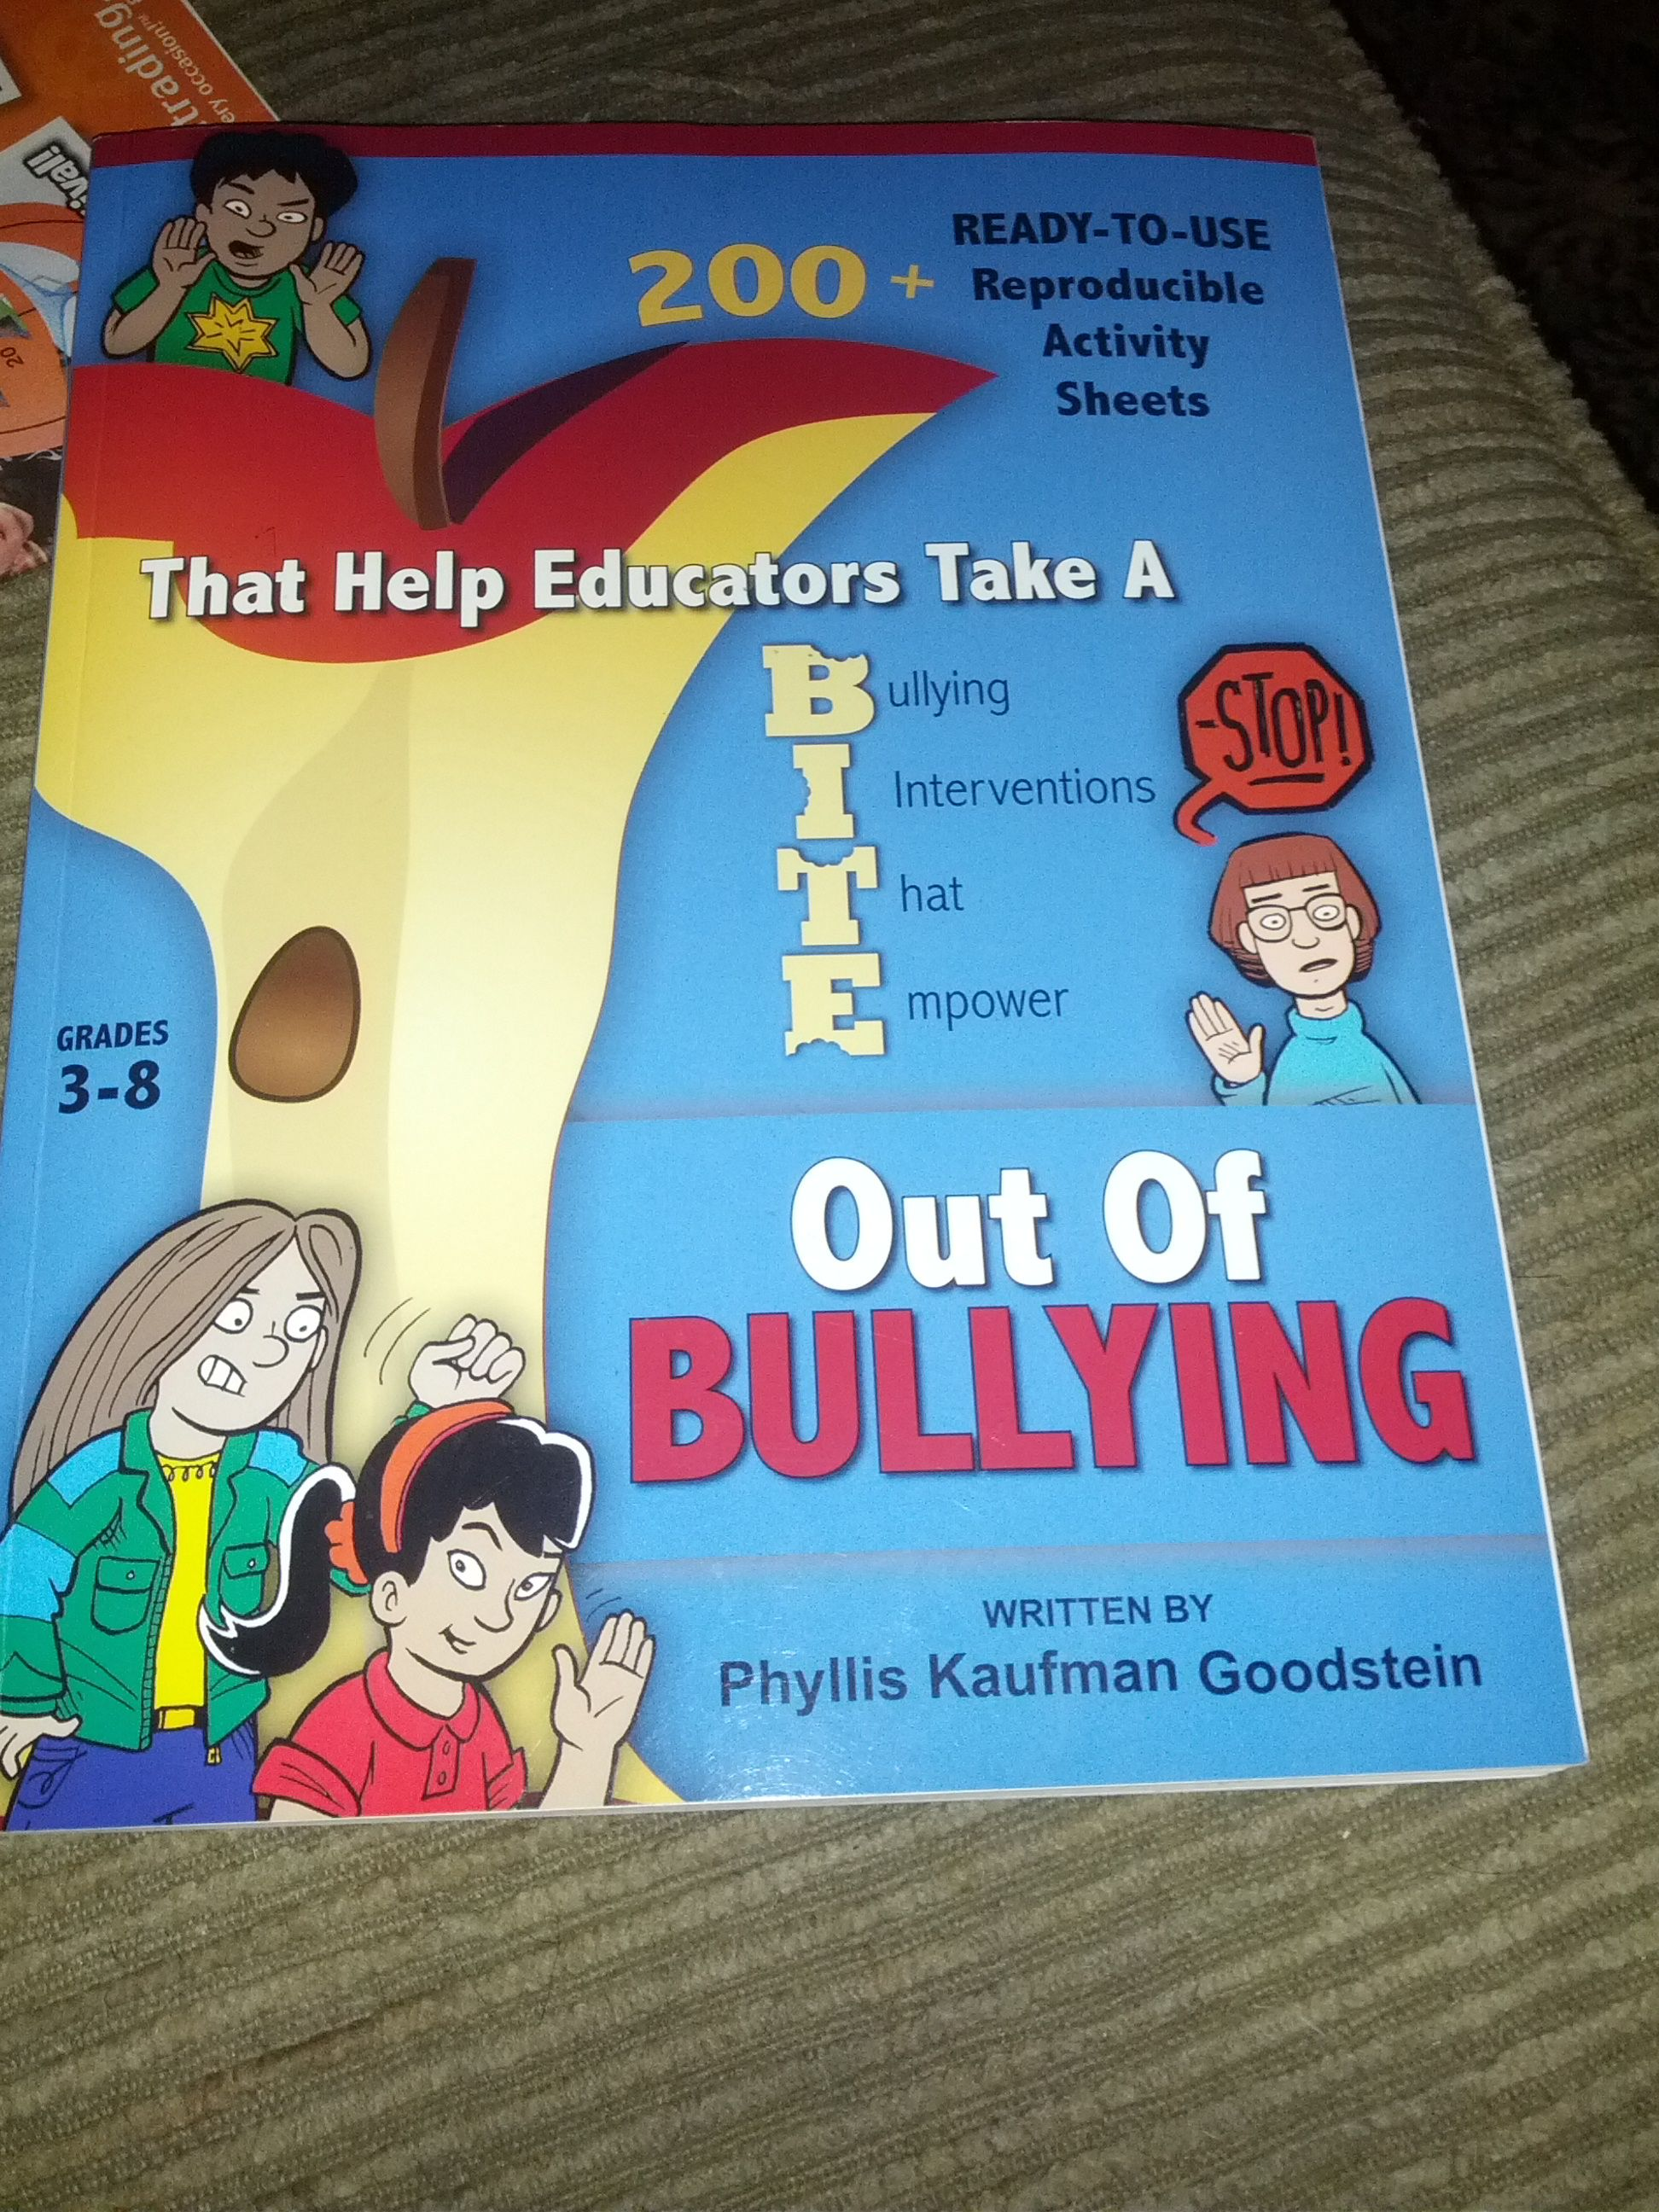 Great Anti Bullying Book With Reproducible Activity Sheets